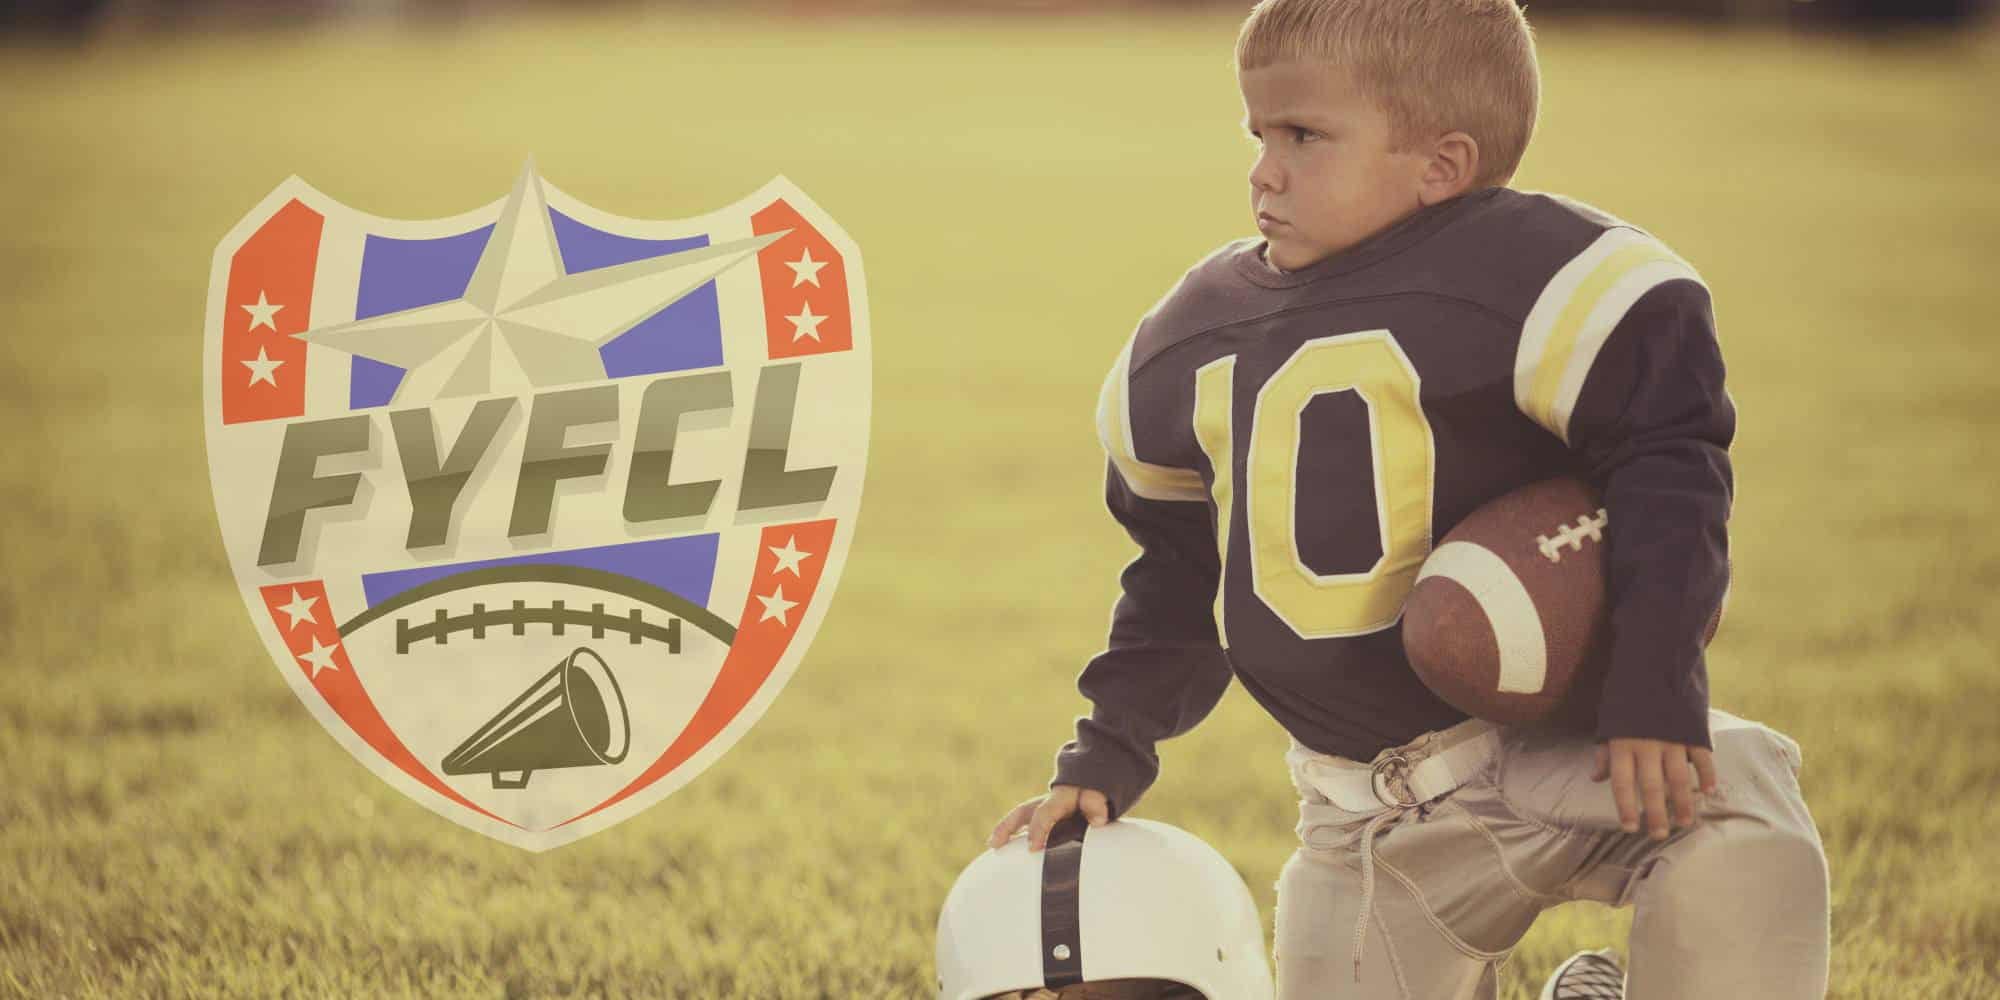 Image of FYFCL Youth Football Player